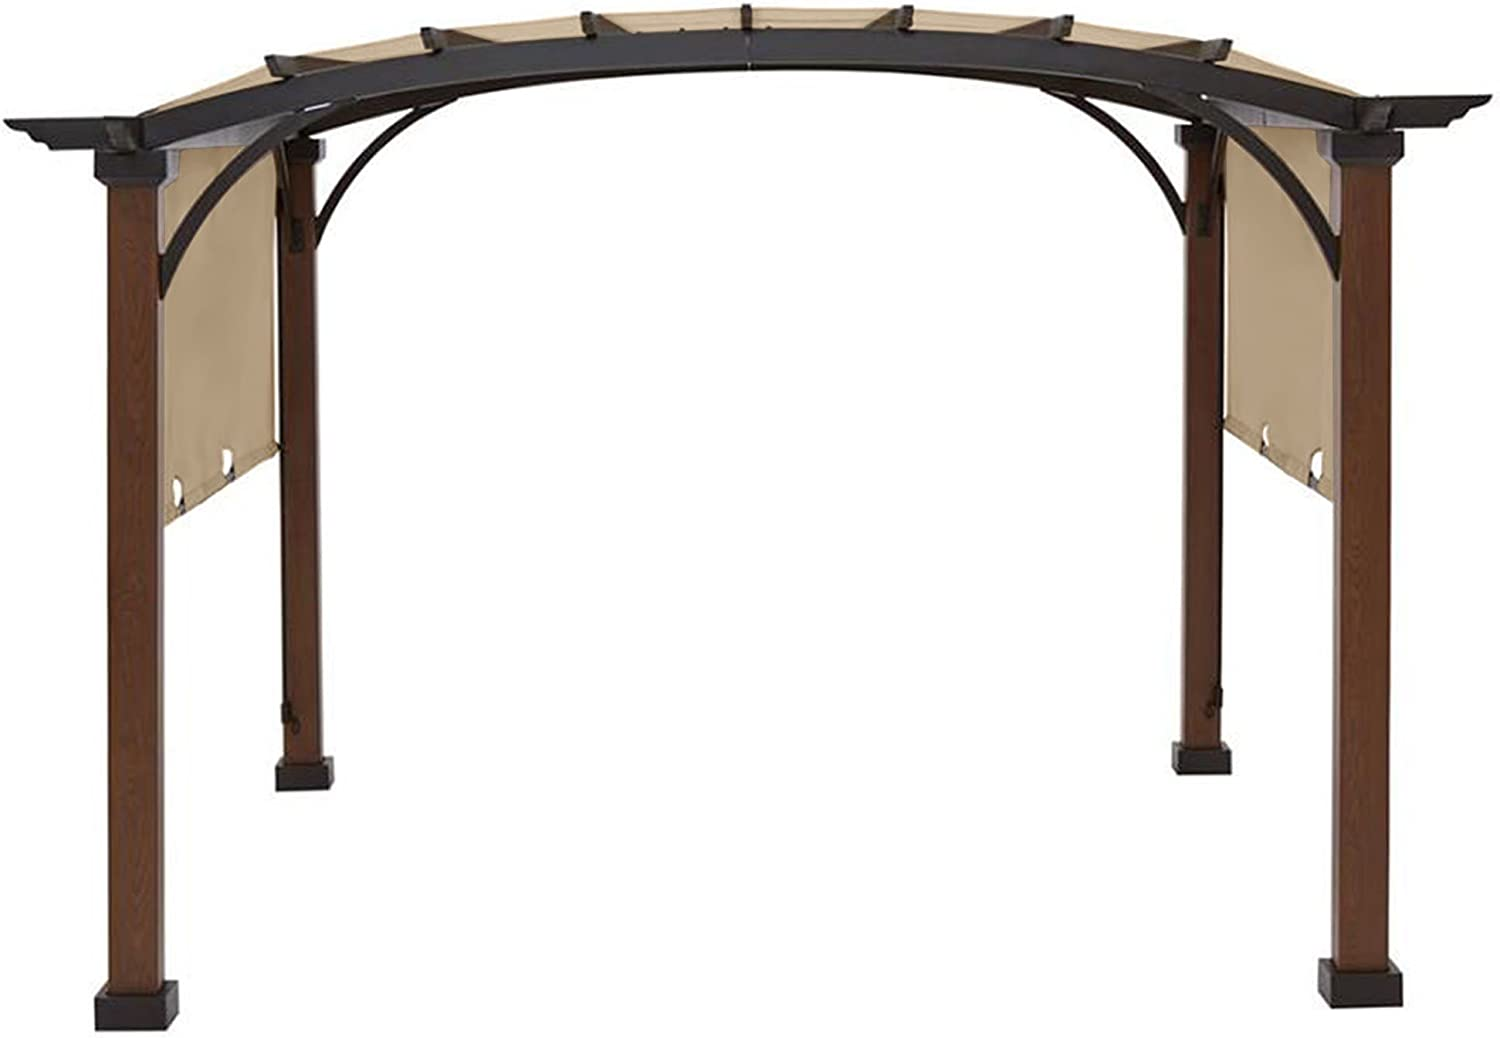 Garden Winds Replacement Canopy Top Cover for The AR Freestanding Pergola - RipLock 350